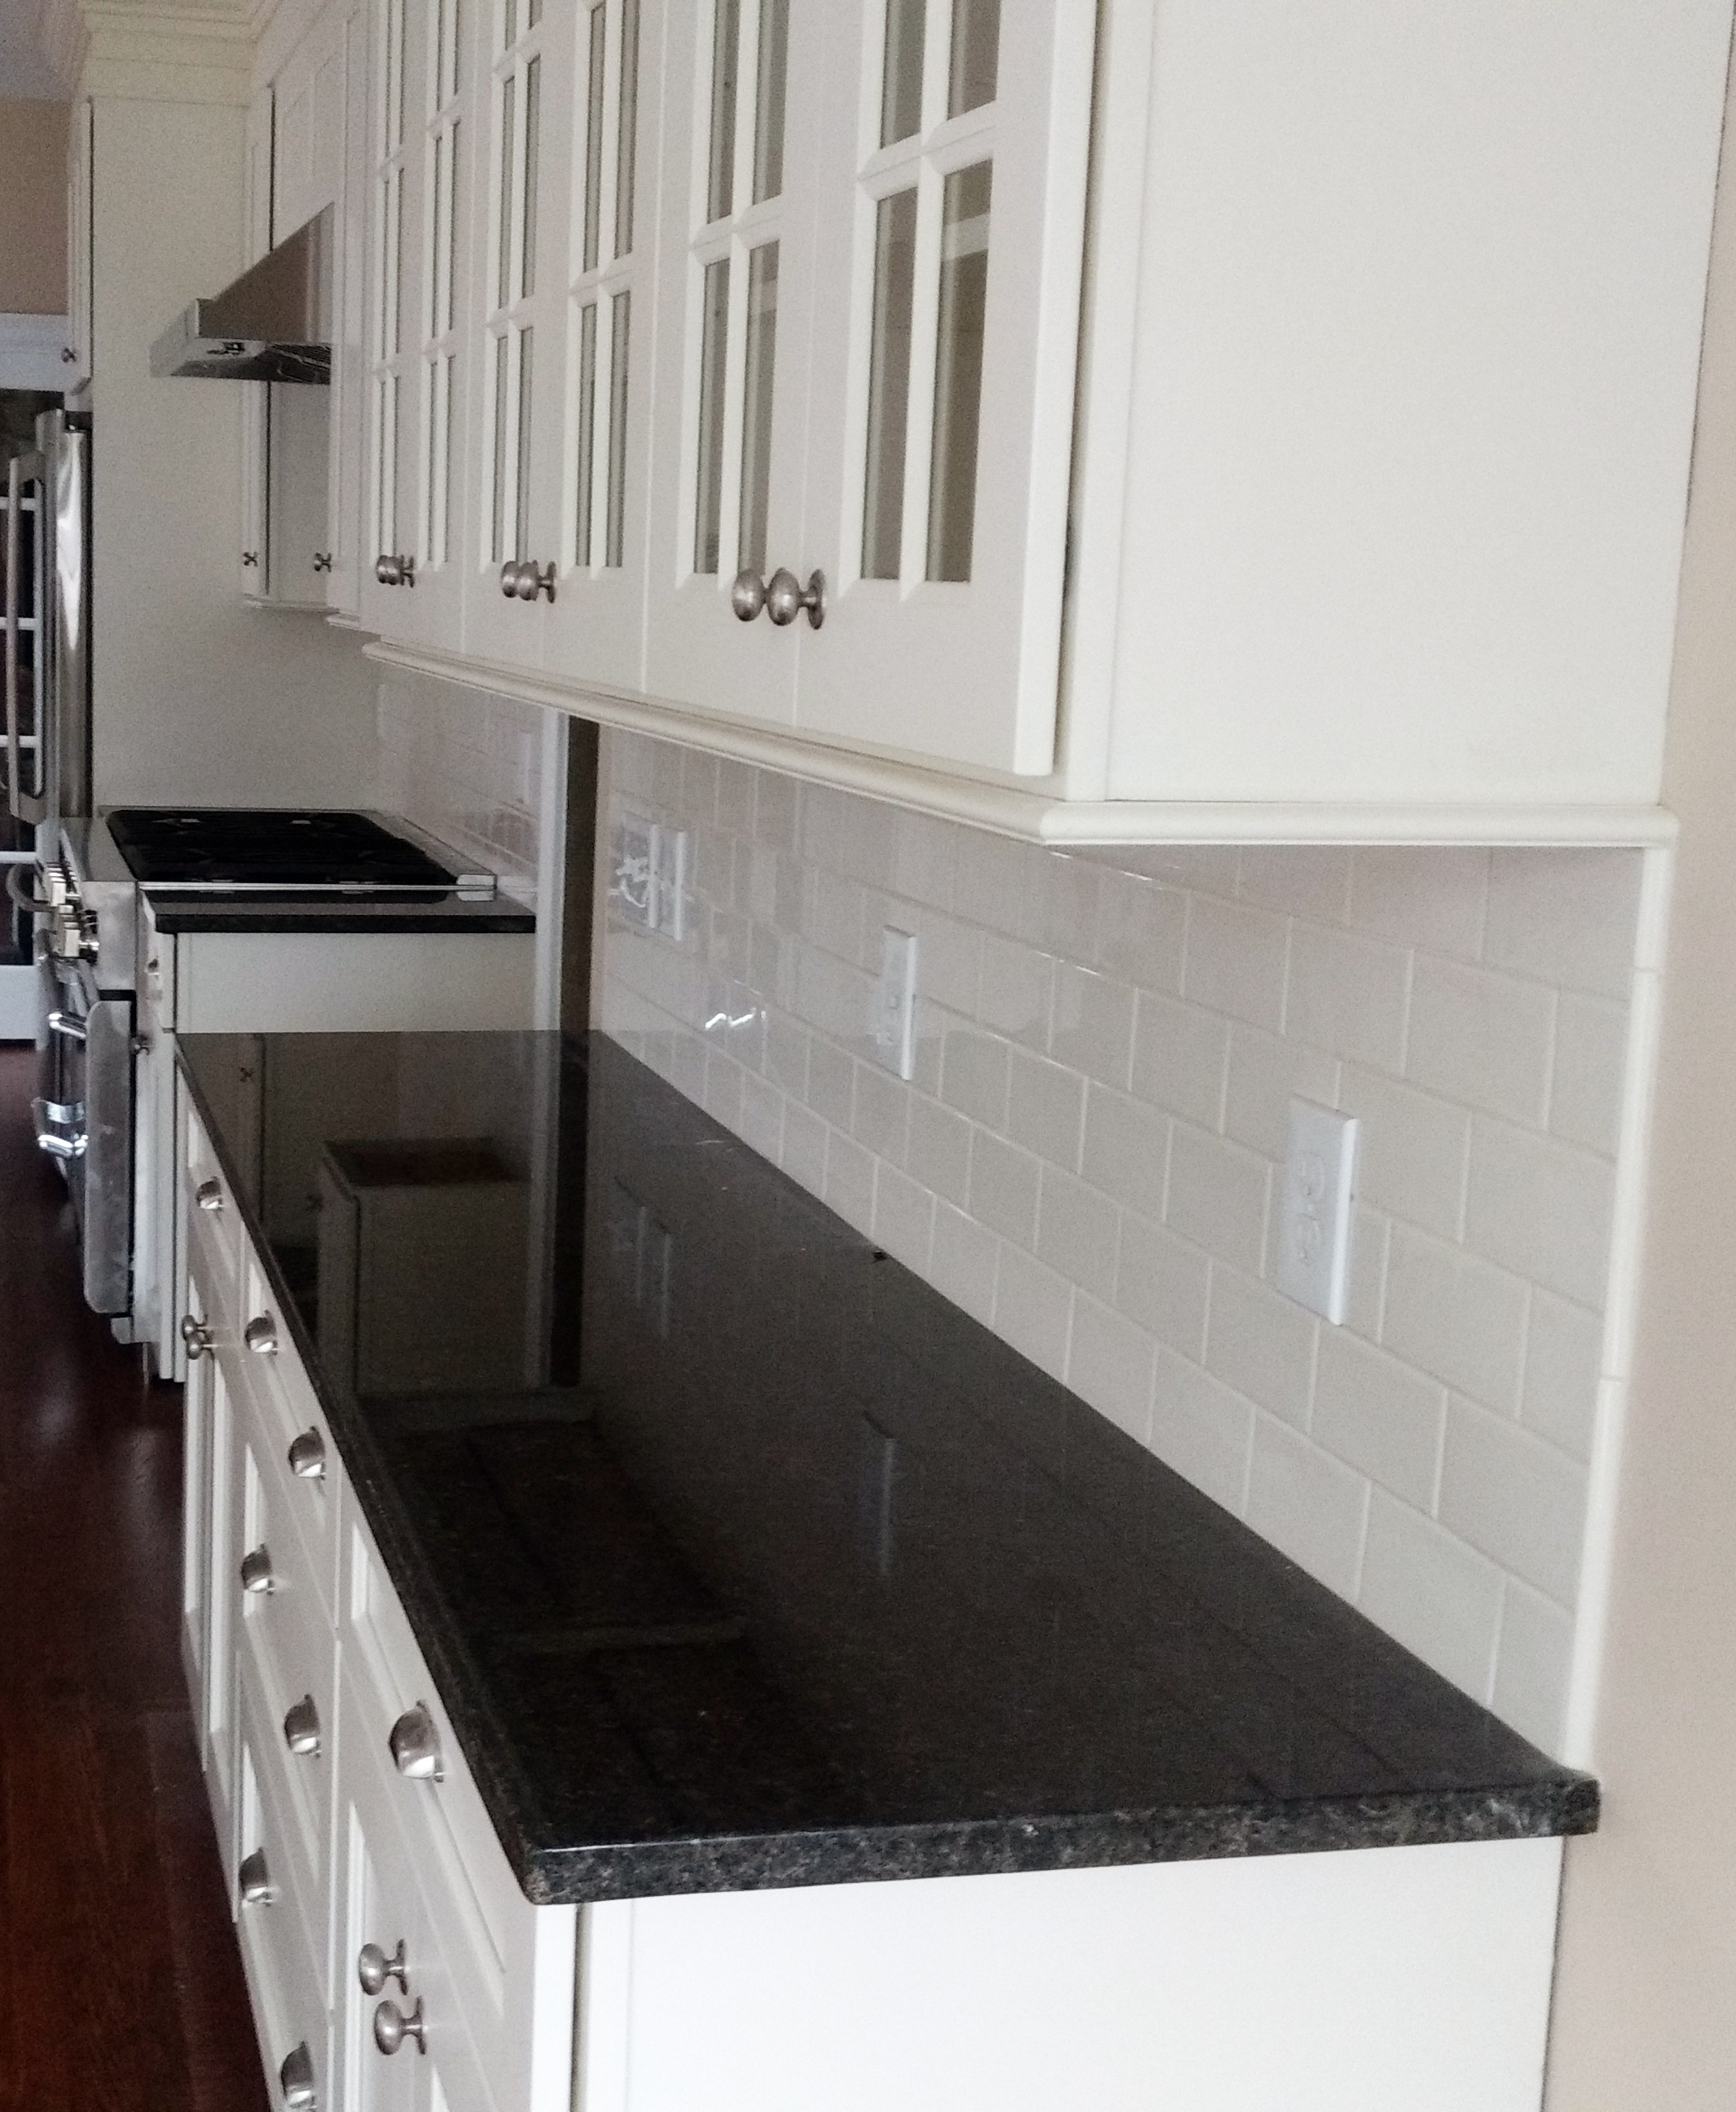 clean backsplash subway tile kitchen remodel